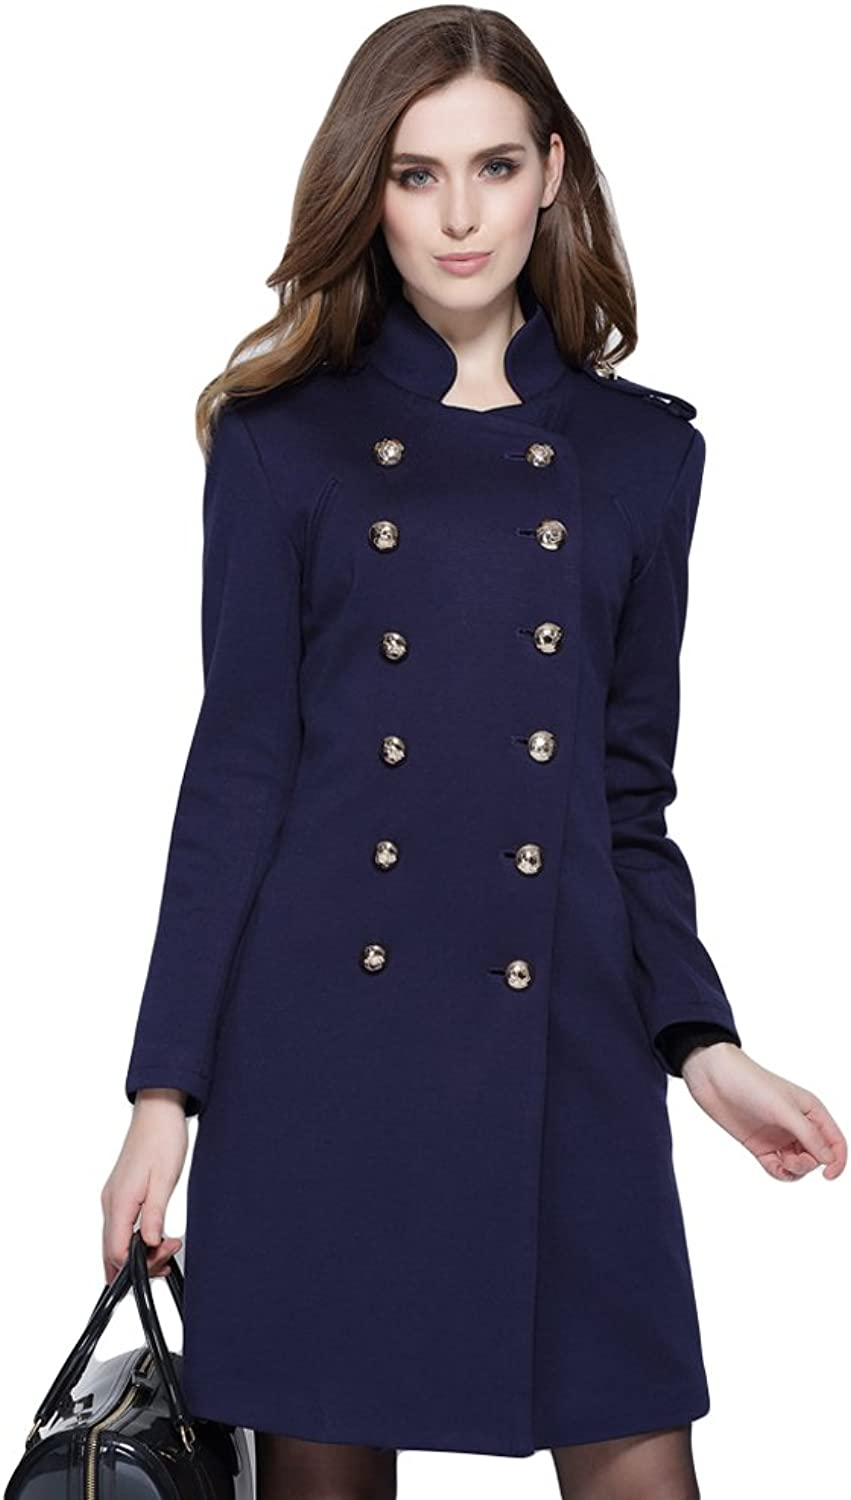 WintCO Women Coat Doublebreasted Stand Collar Large Size Fashion Outwear